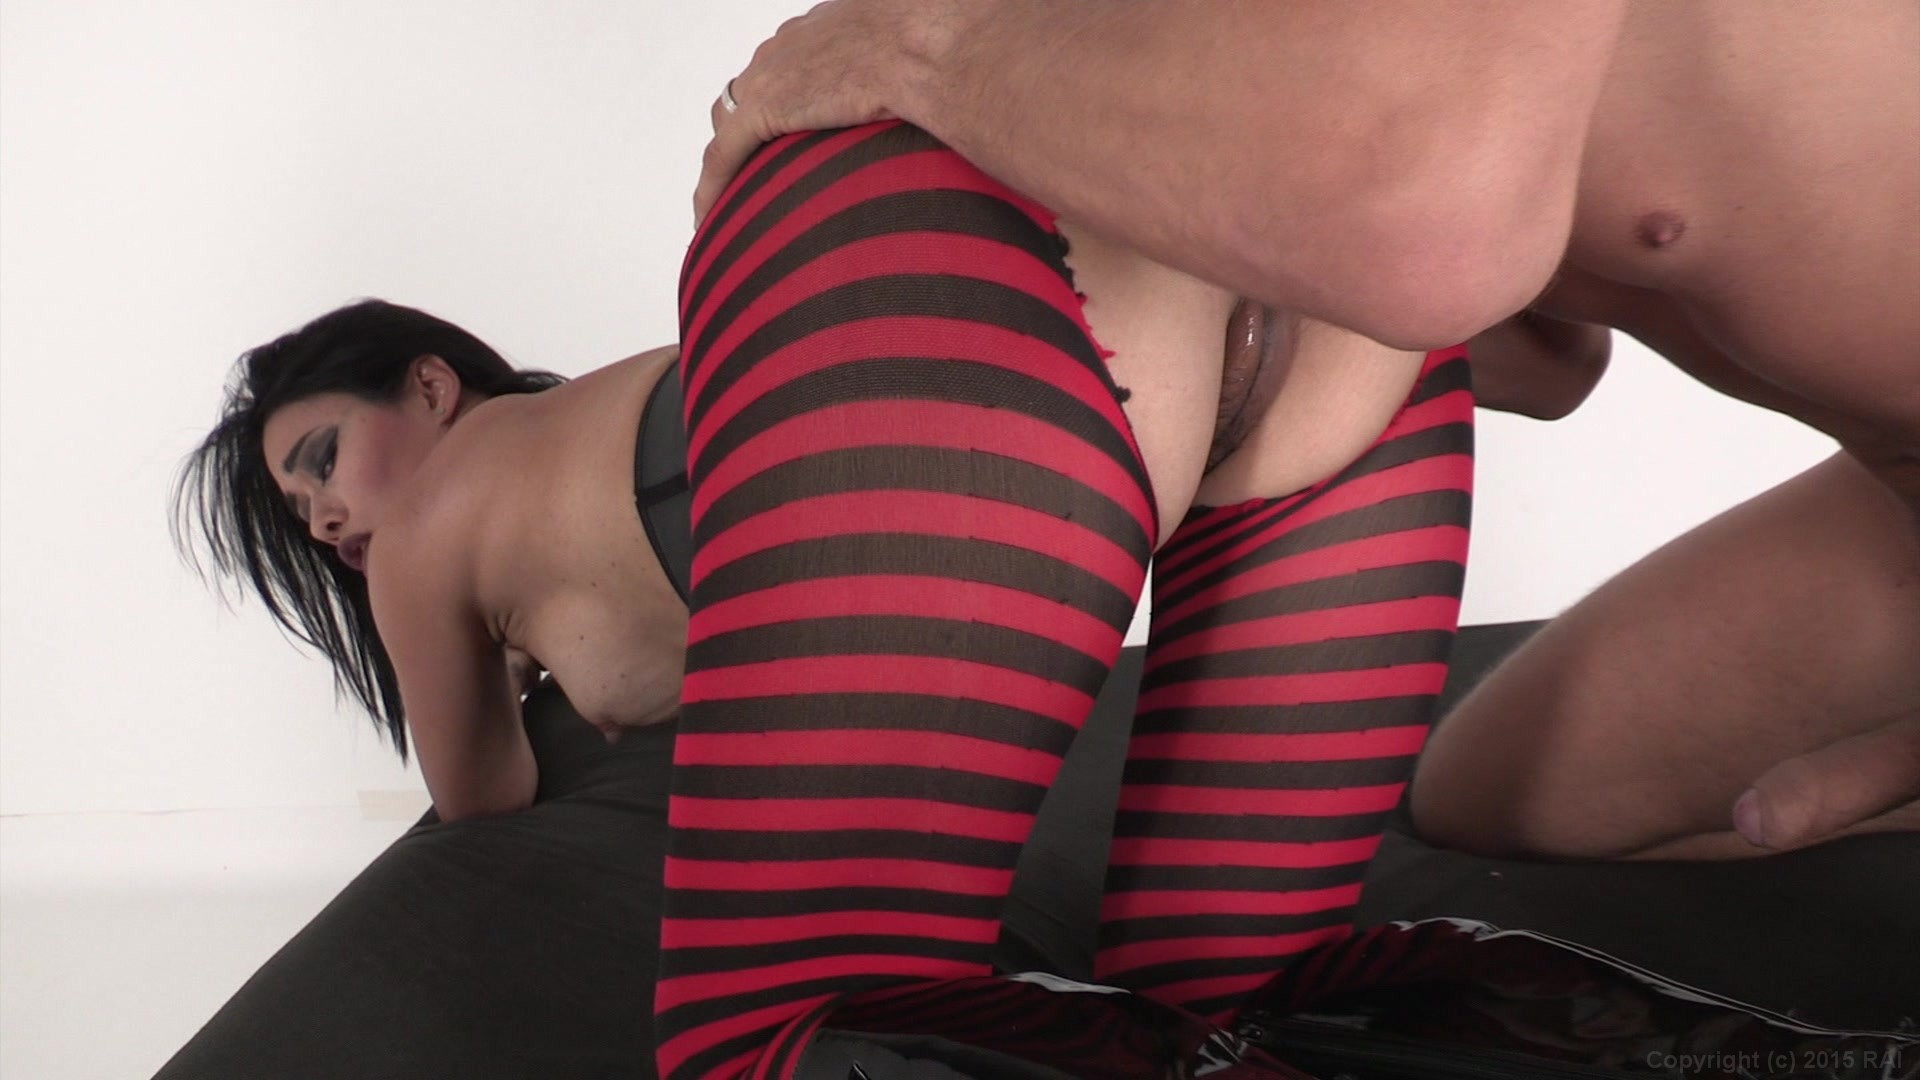 Scene with Mick Blue and Dana Vespoli - image 4 out of 20